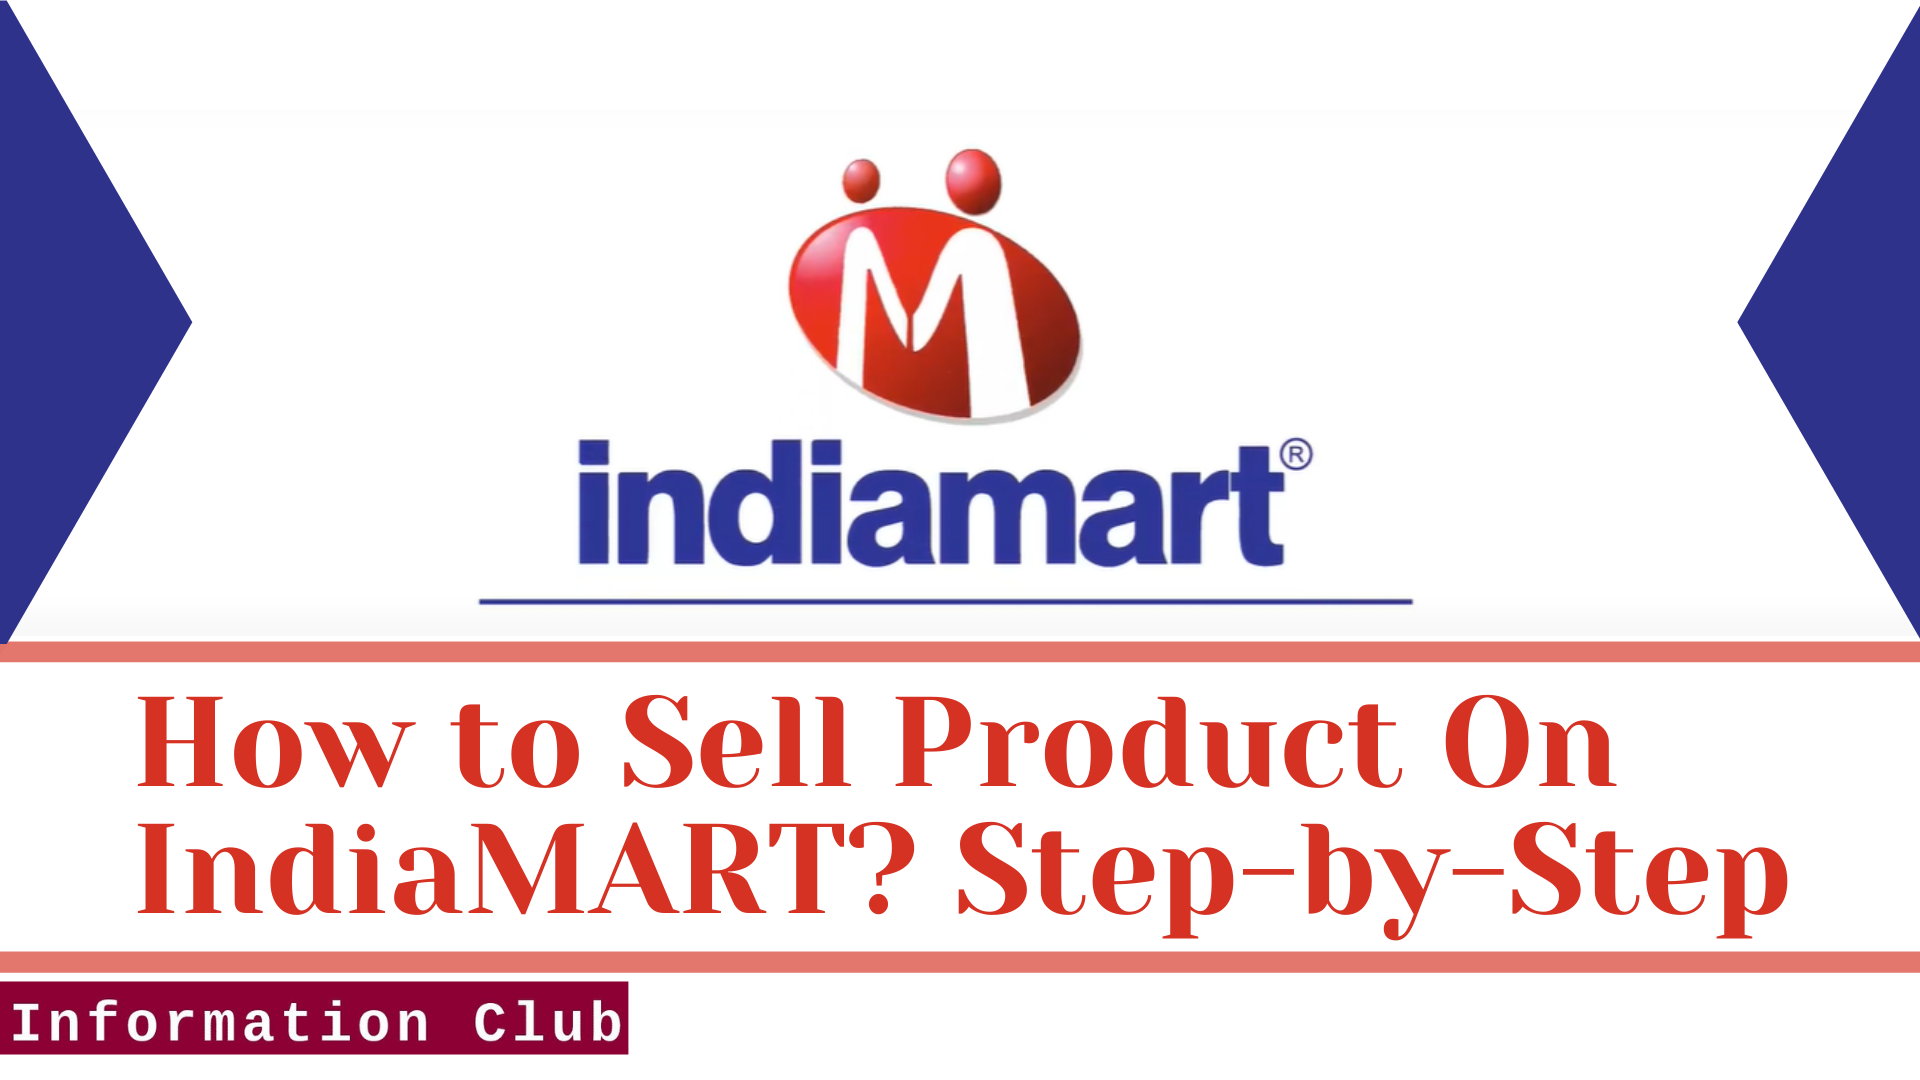 https://www.clubinfonline.com/2020/11/28/how-to-sell-product-on-indiamart-registration/